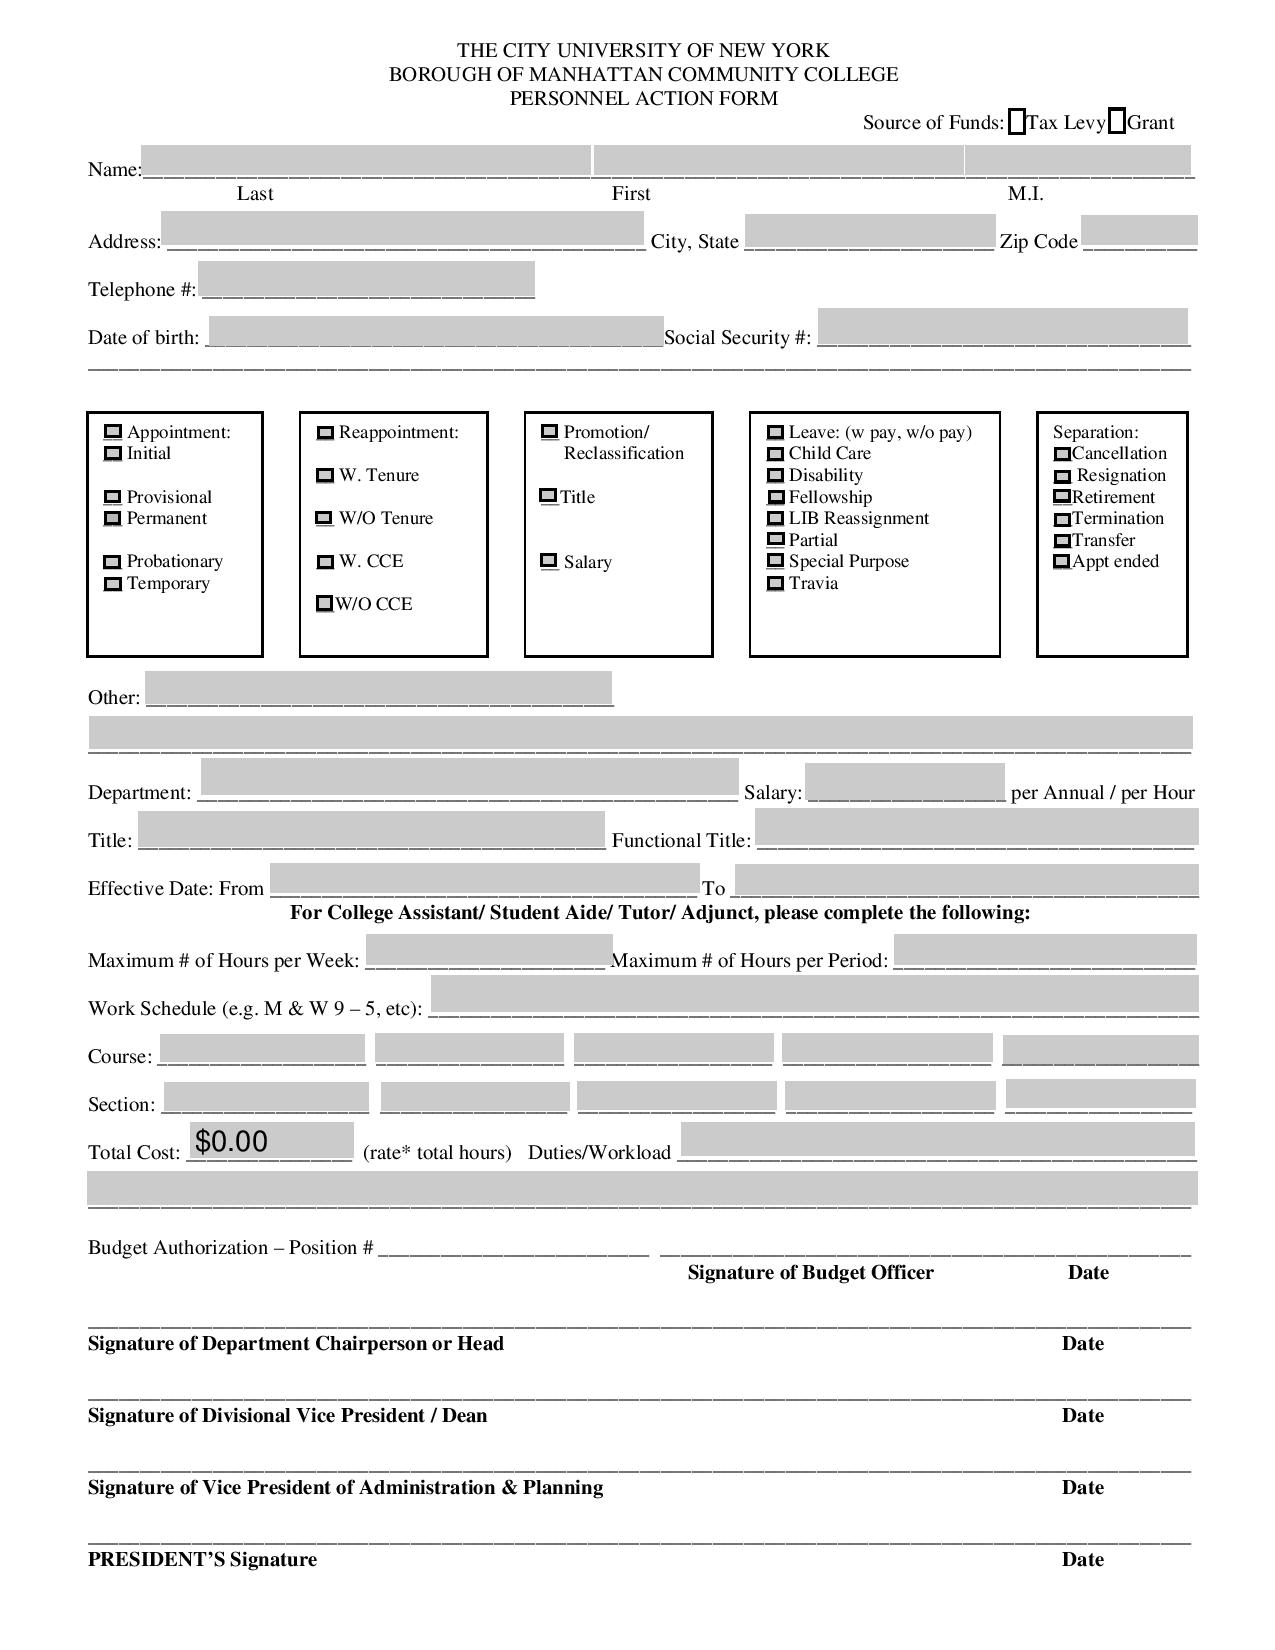 general personnel action form in pdf page 001